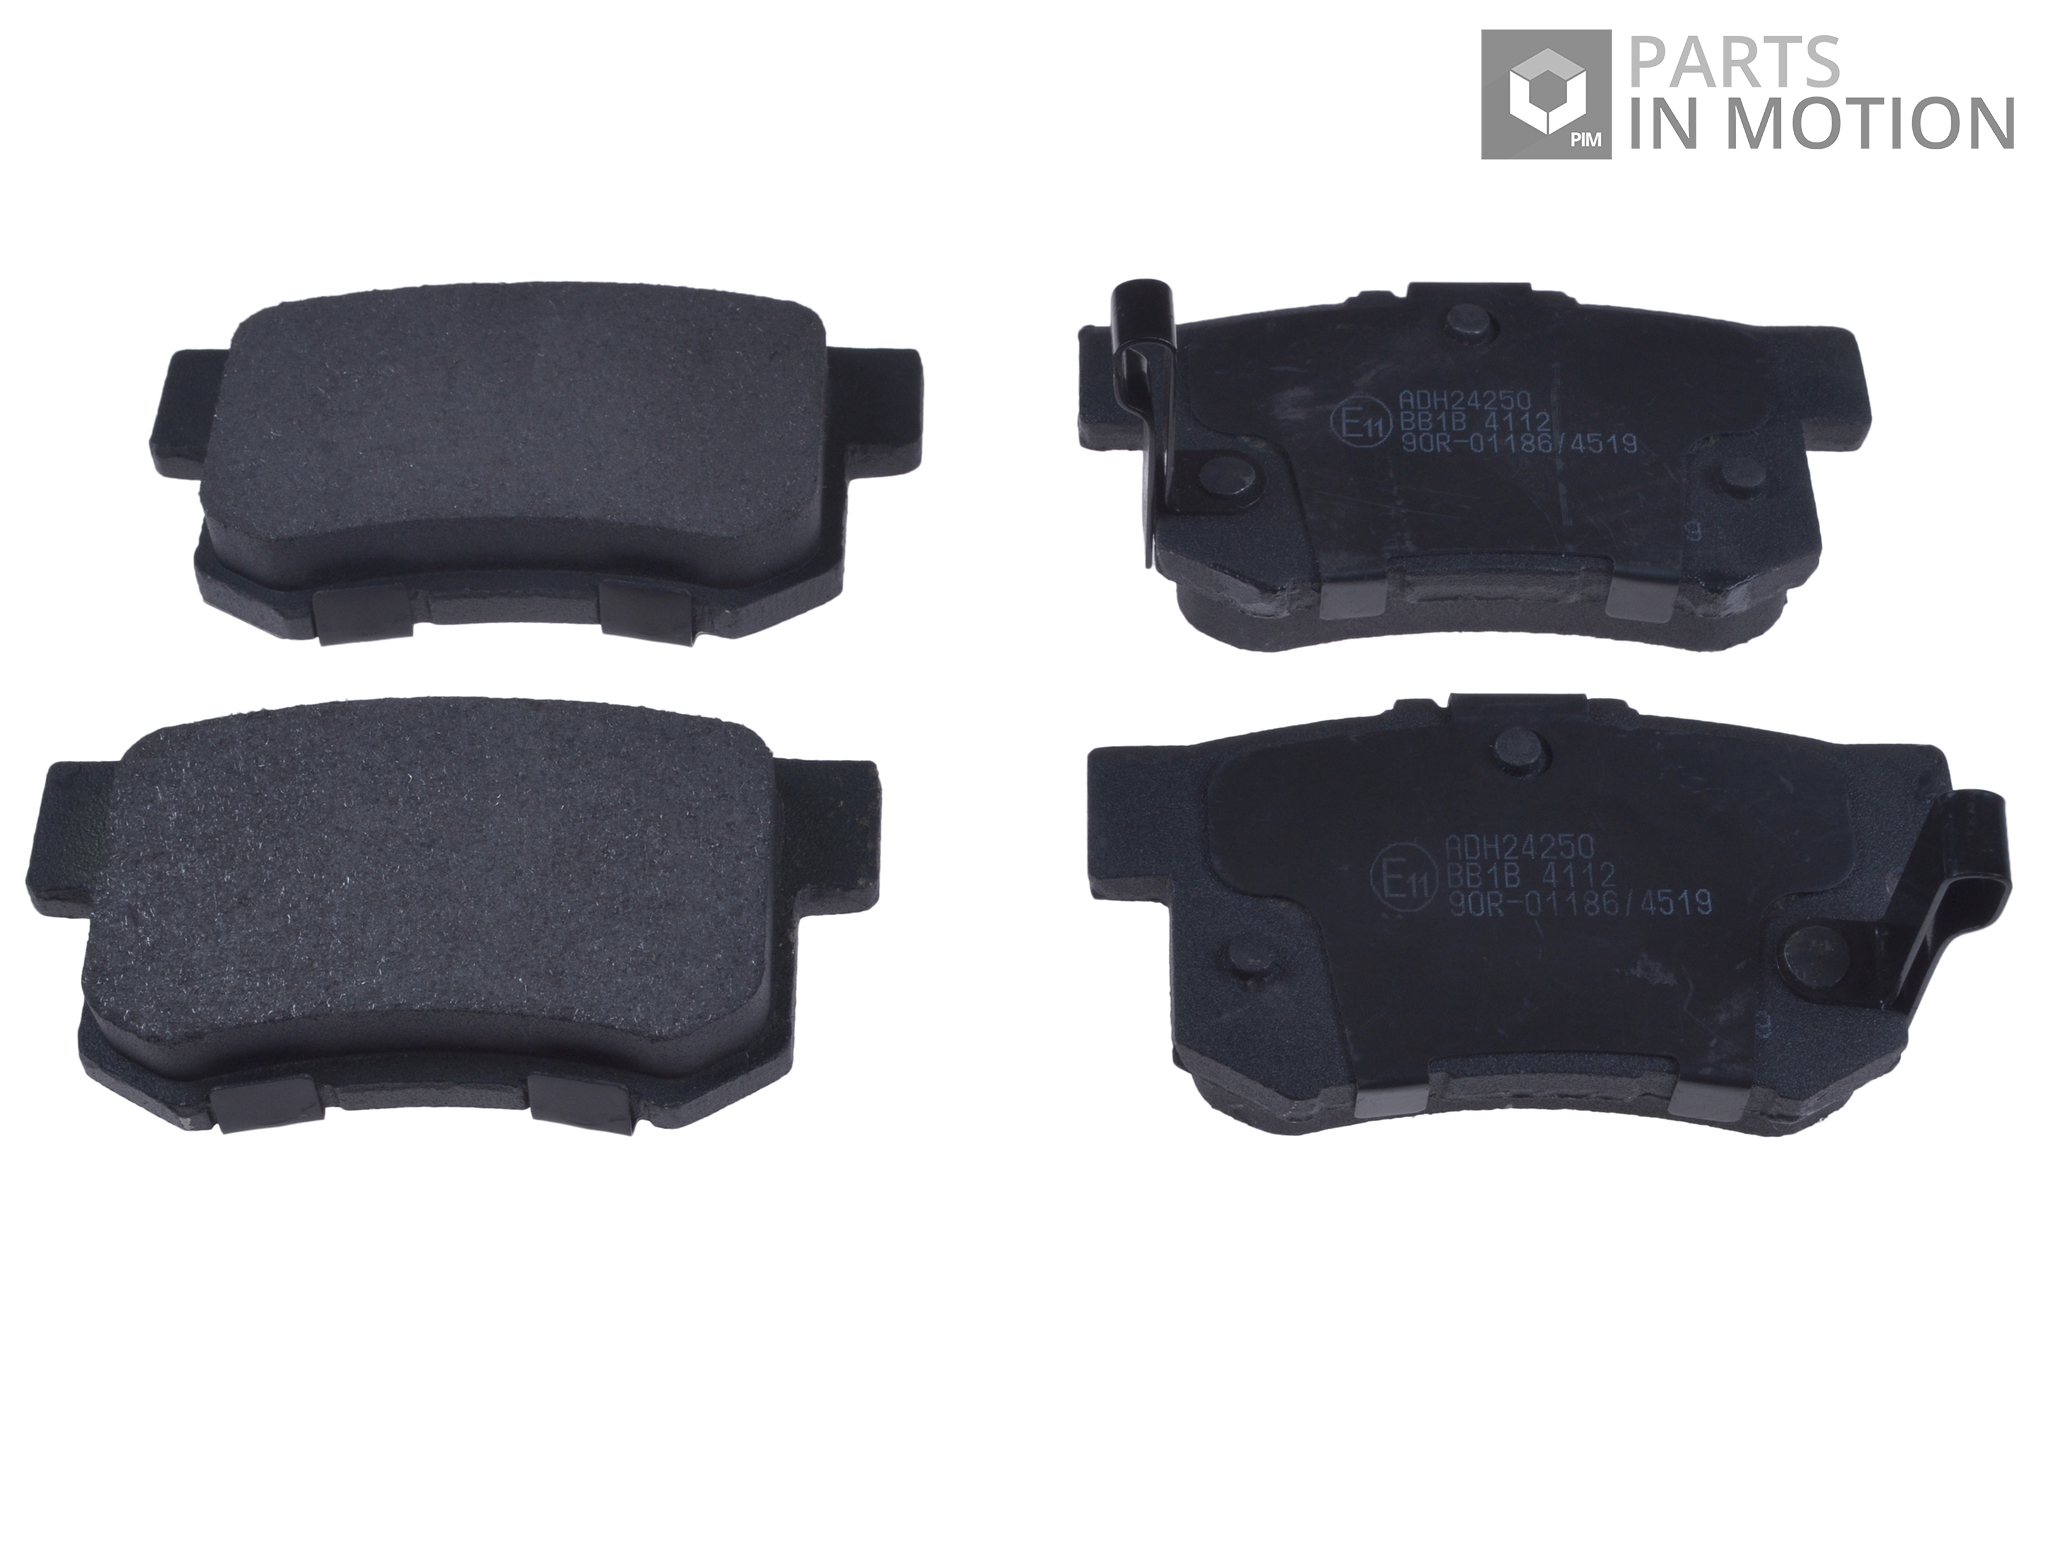 brake pads set fits honda civic rear 97 to 12 adh24250 blue print 06430s0aj00 ebay. Black Bedroom Furniture Sets. Home Design Ideas